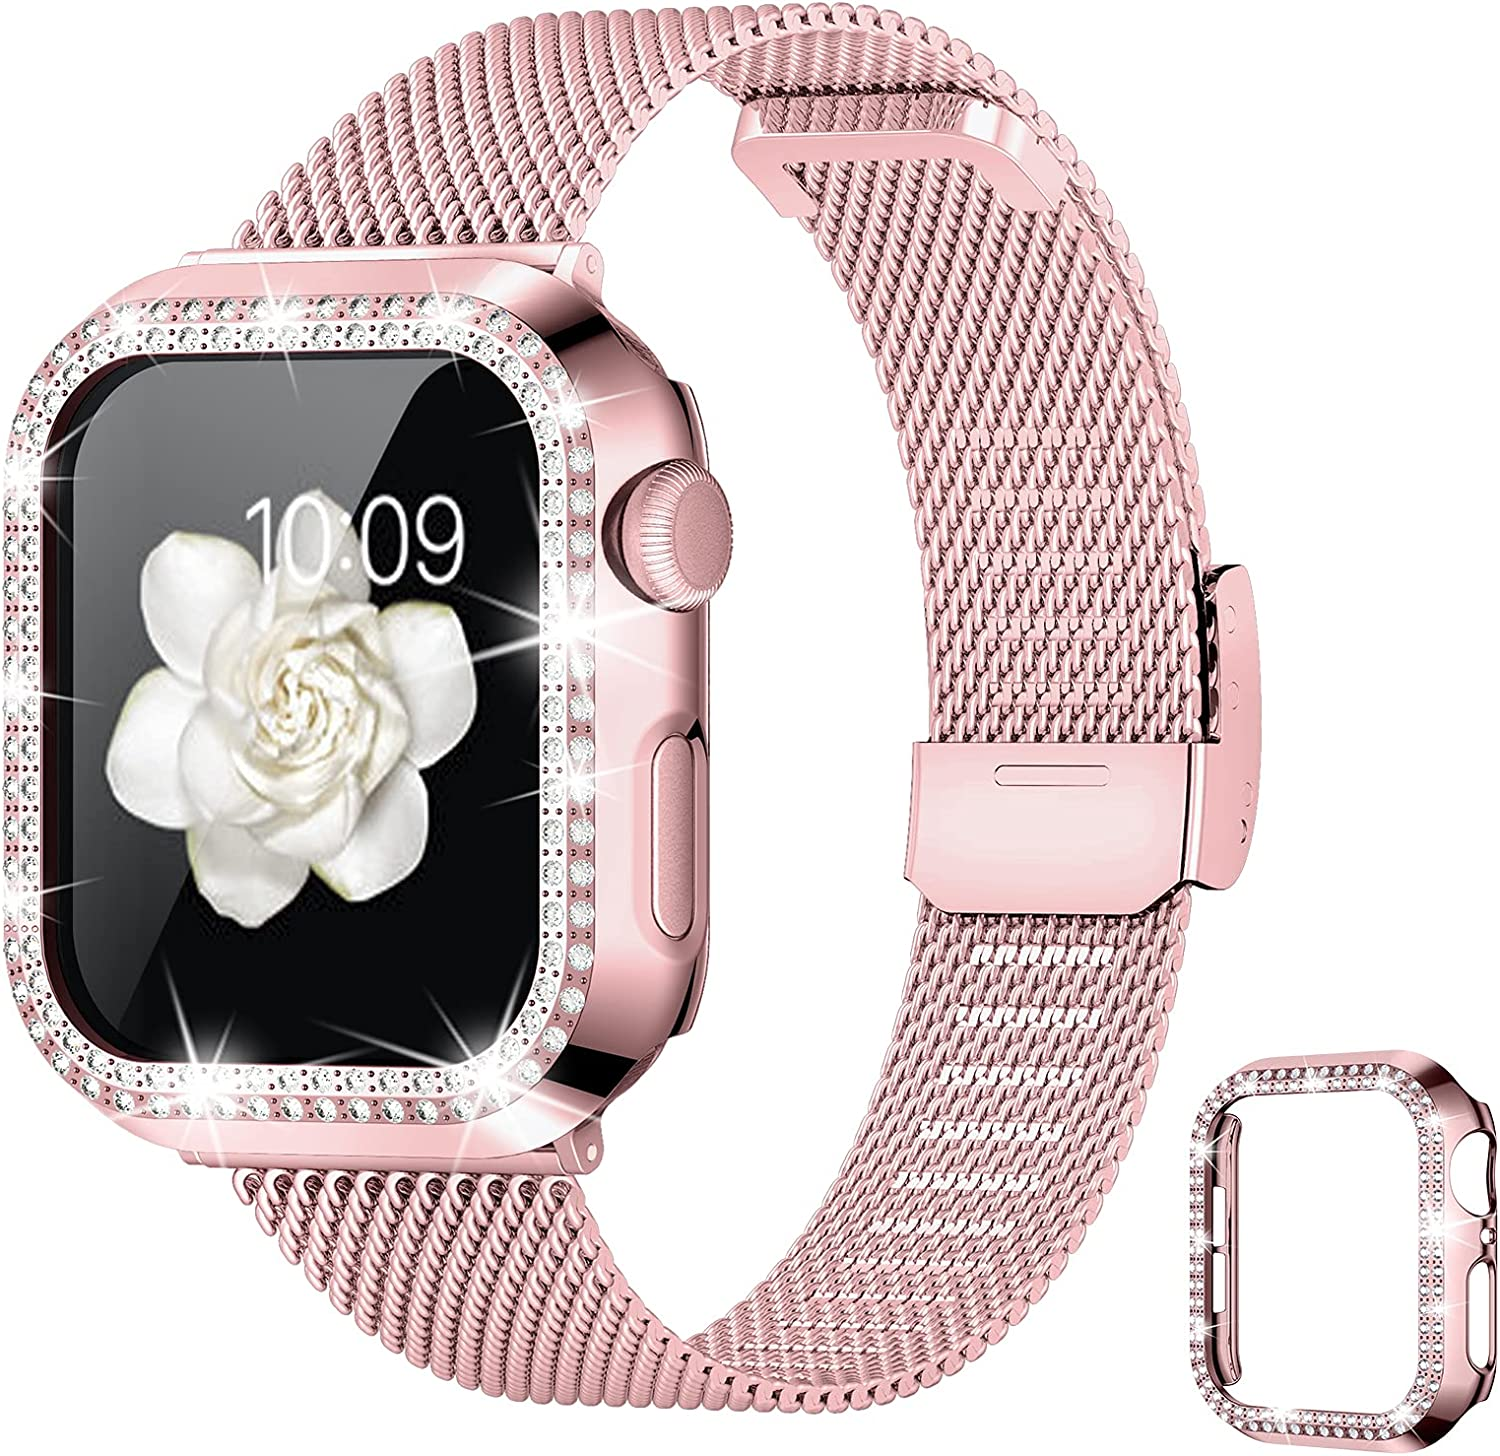 Goton Compatible with Apple Watch Band 38mm 40mm 42mm 44mm with Bling Case for Women Girls,Thin Slim Stainless Steel Mesh Metal Replacement Wristband for iWatch SE & Series 6/5/4/3/2/1(Rose Pink,40mm)